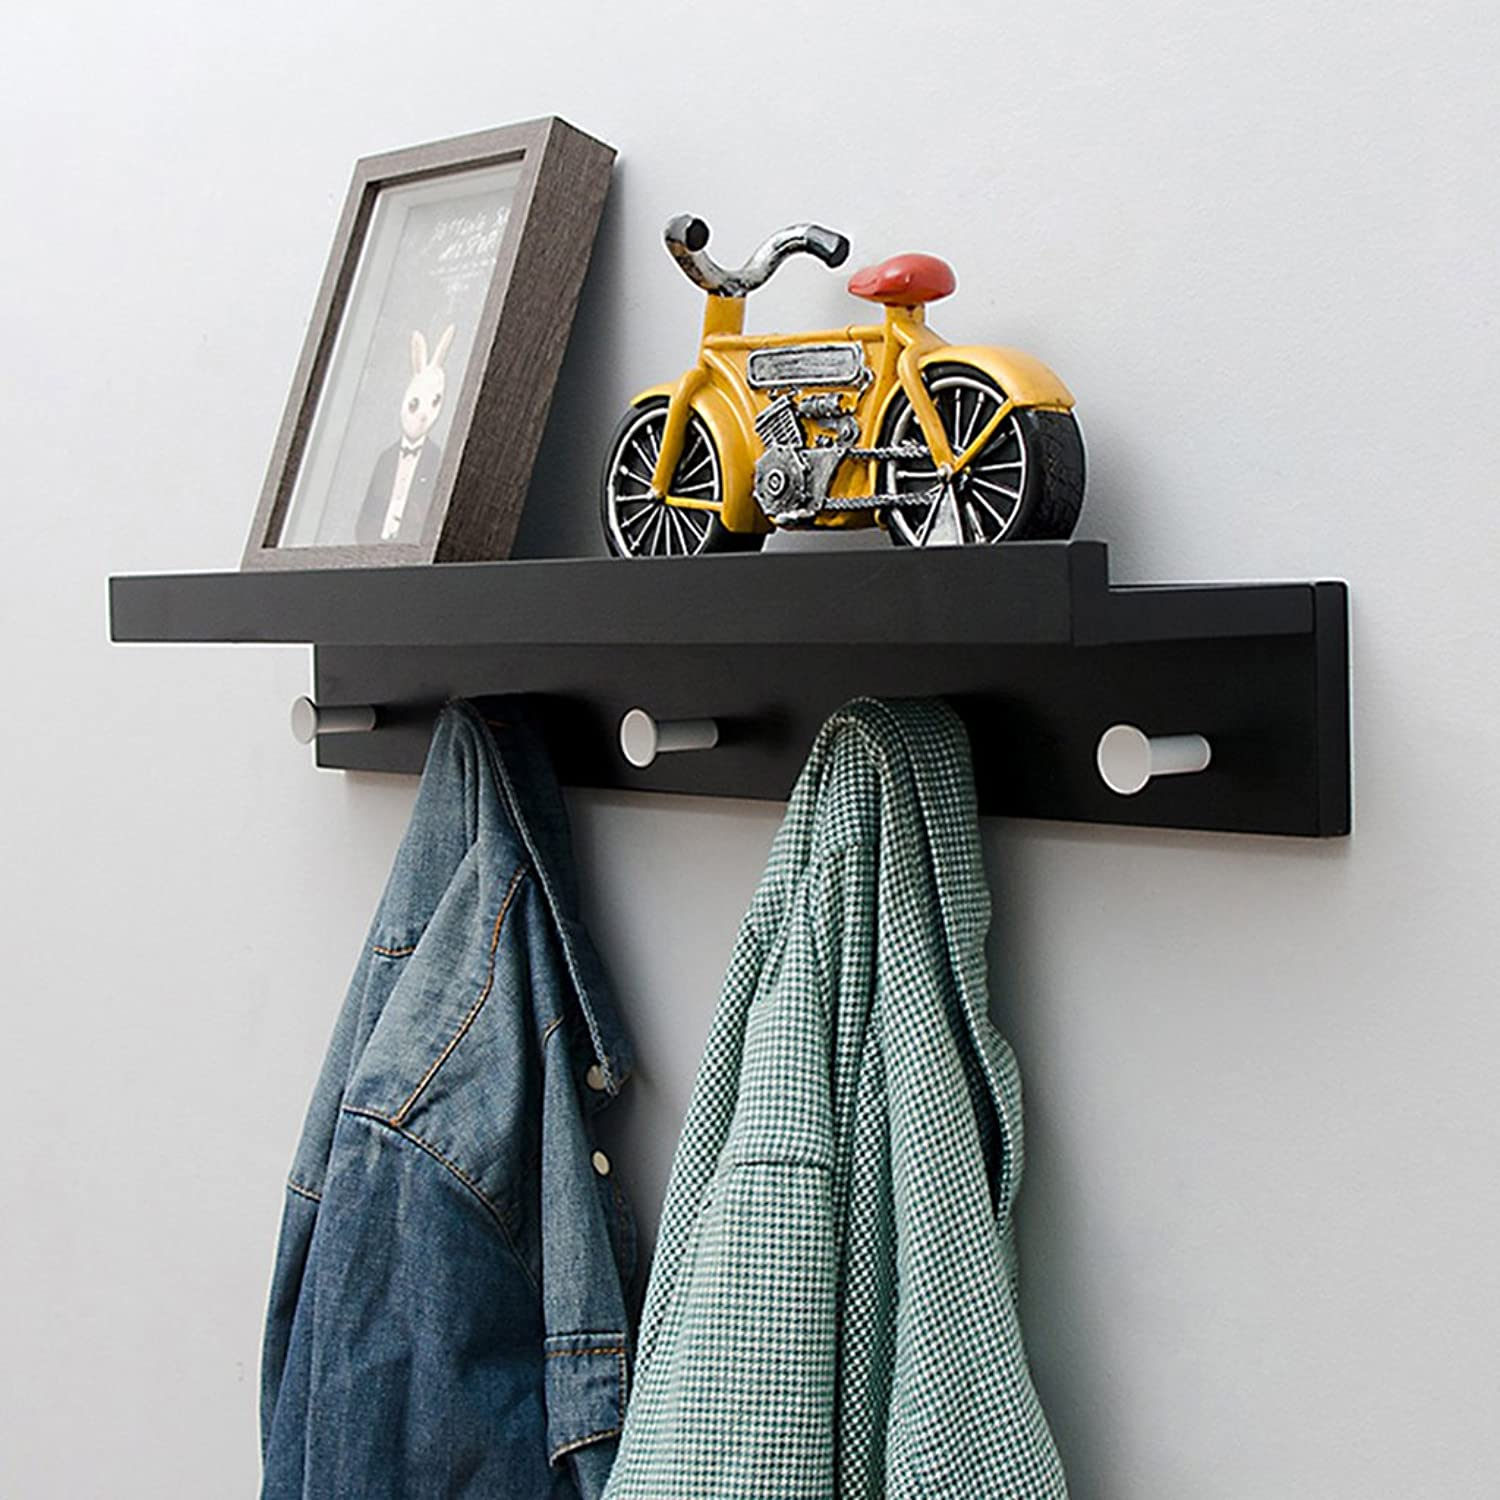 Coat Rack Wall-Mounted Shelf Bamboo Wooden Hook Rack with 5 Alloy Hooks and Upper Shelf for Storage for Entryway Hallway Bathroom Living Room Bedroom Kitchen,Black